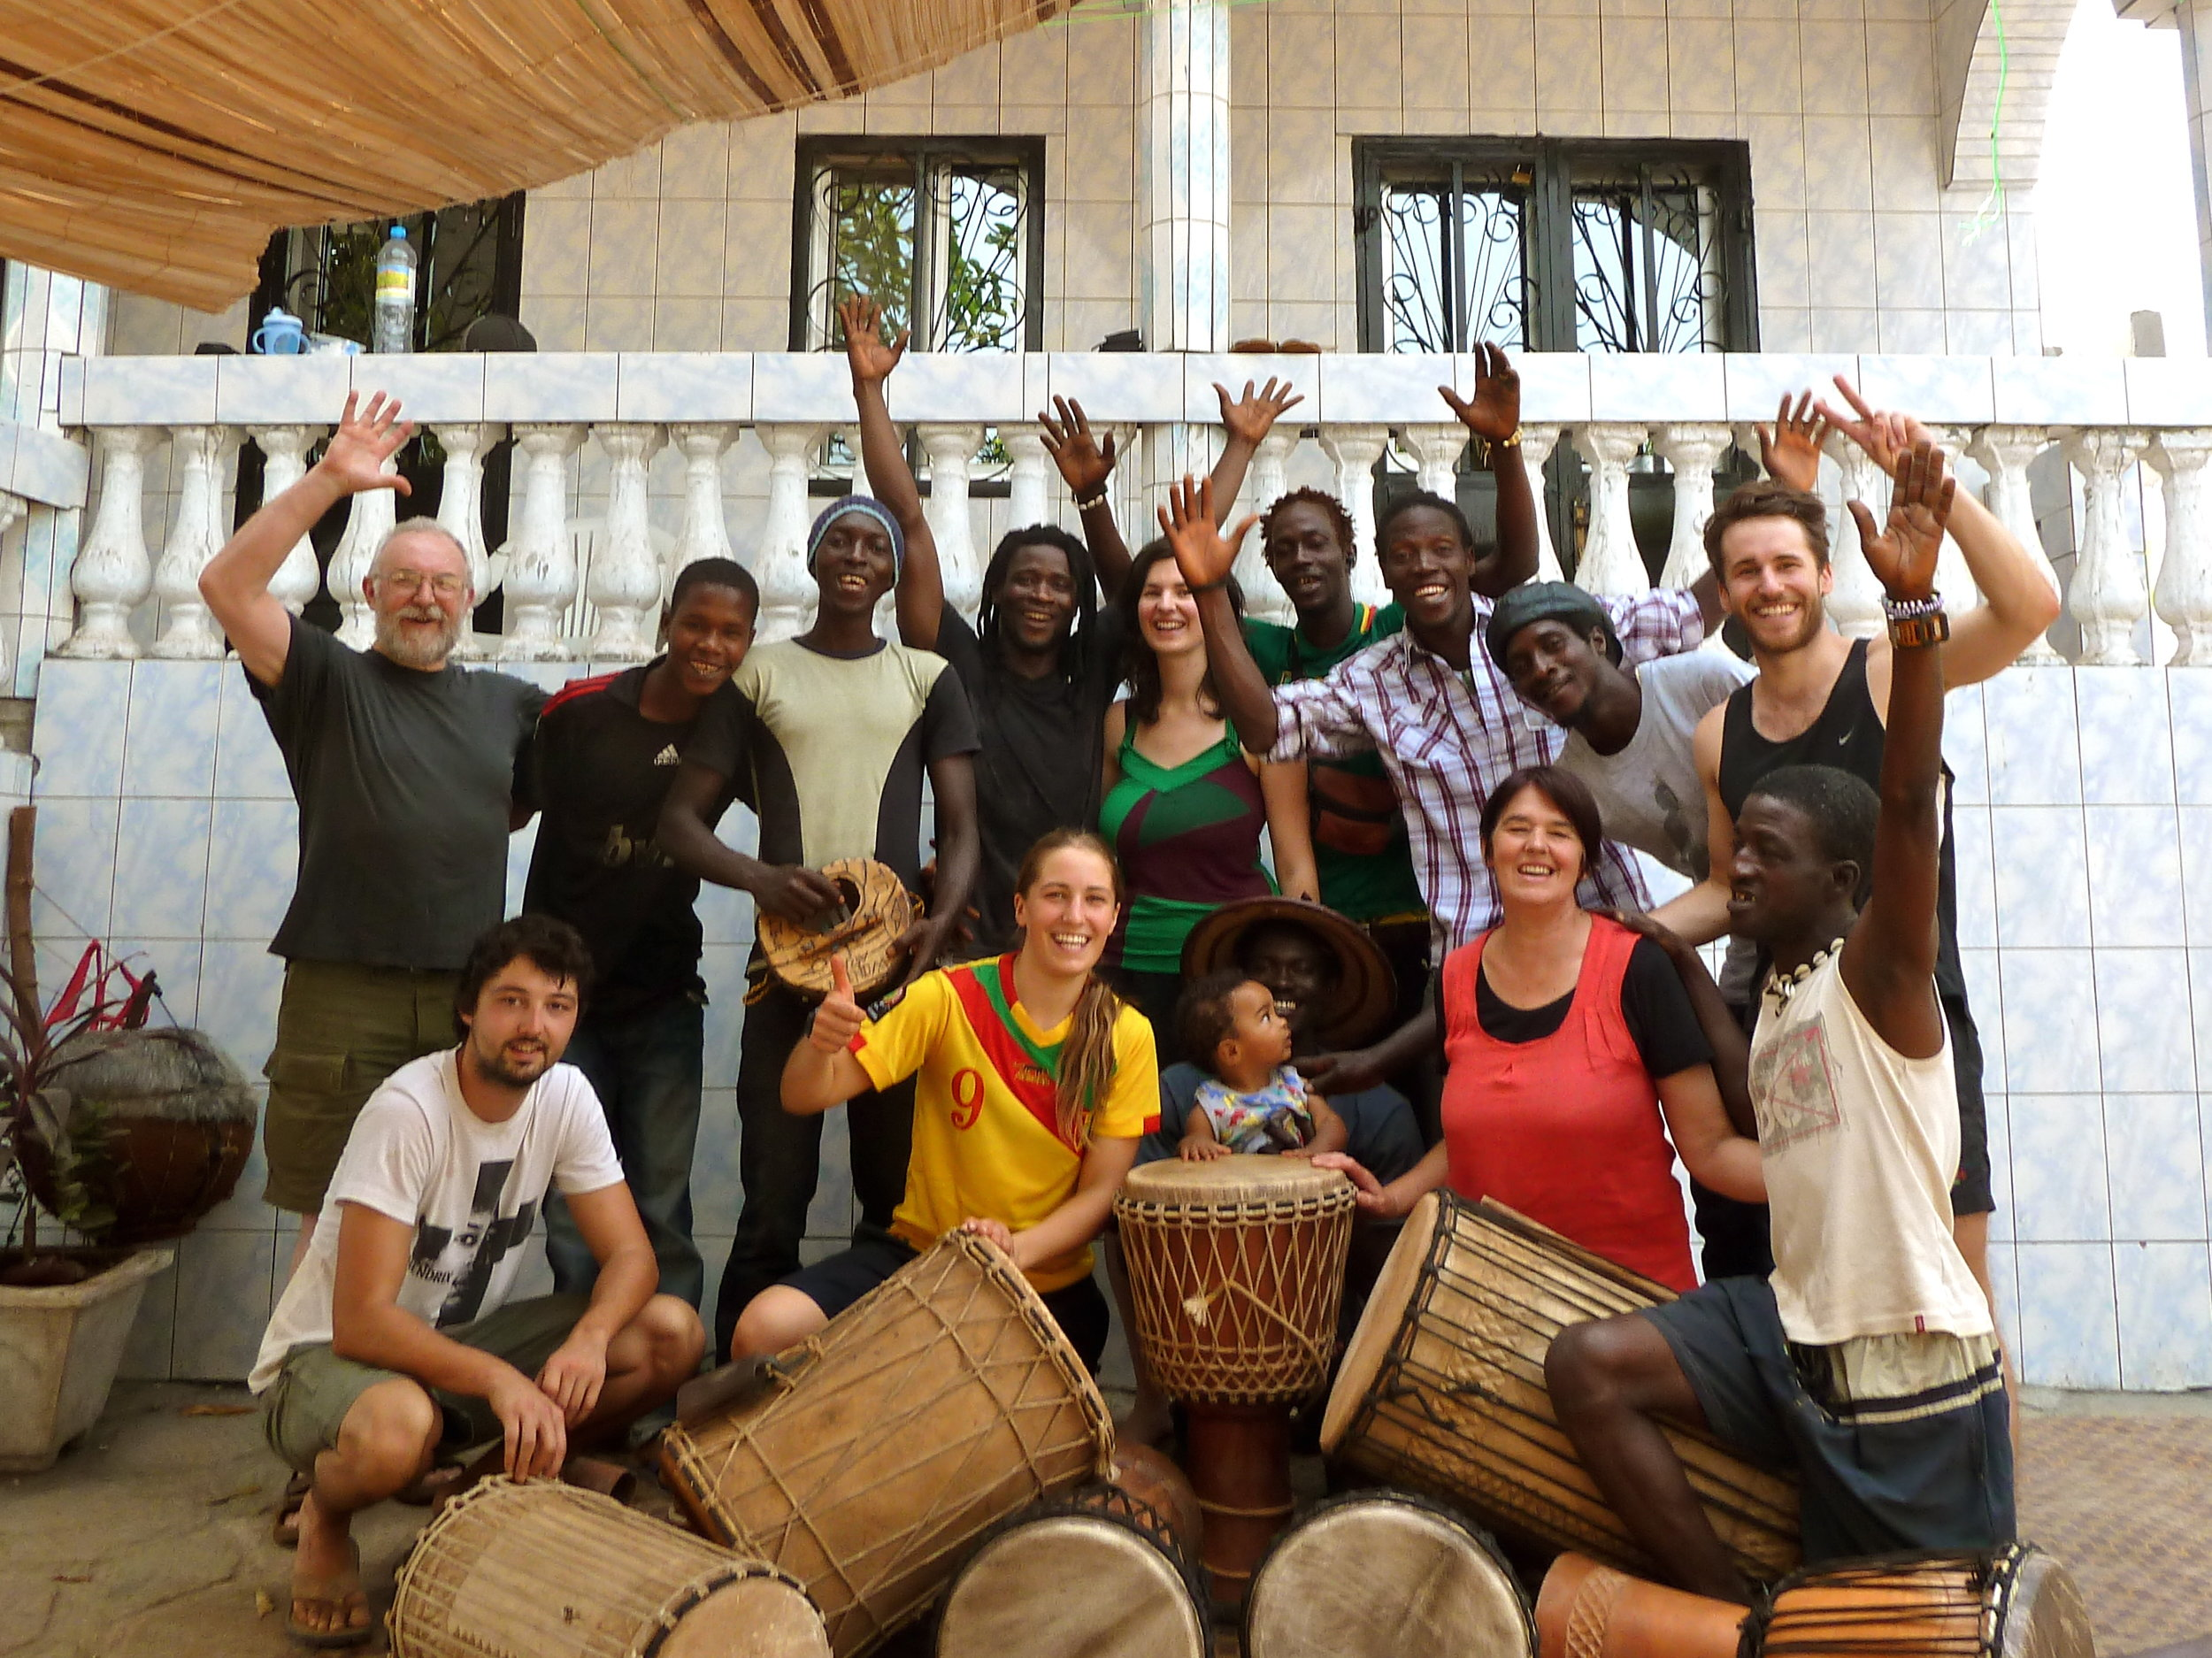 """This was truly a life changing experience! For musicians on any instrument, I guarantee you'll return a far more advanced player by immersing yourself in the diverse and difficult rhythms of West Africa, taught by Mohamed and his team of the finest master drummers. Mo and Anna were amazing hosts, and the cultural day and overnight trips they took us on have become my most valued and authentic travel memories.I was nervous about booking this trip, but as soon as I landed and met everyone I realised it was the best decision I had ever made, so don't question yourself - just do it!"" - – Dave T."